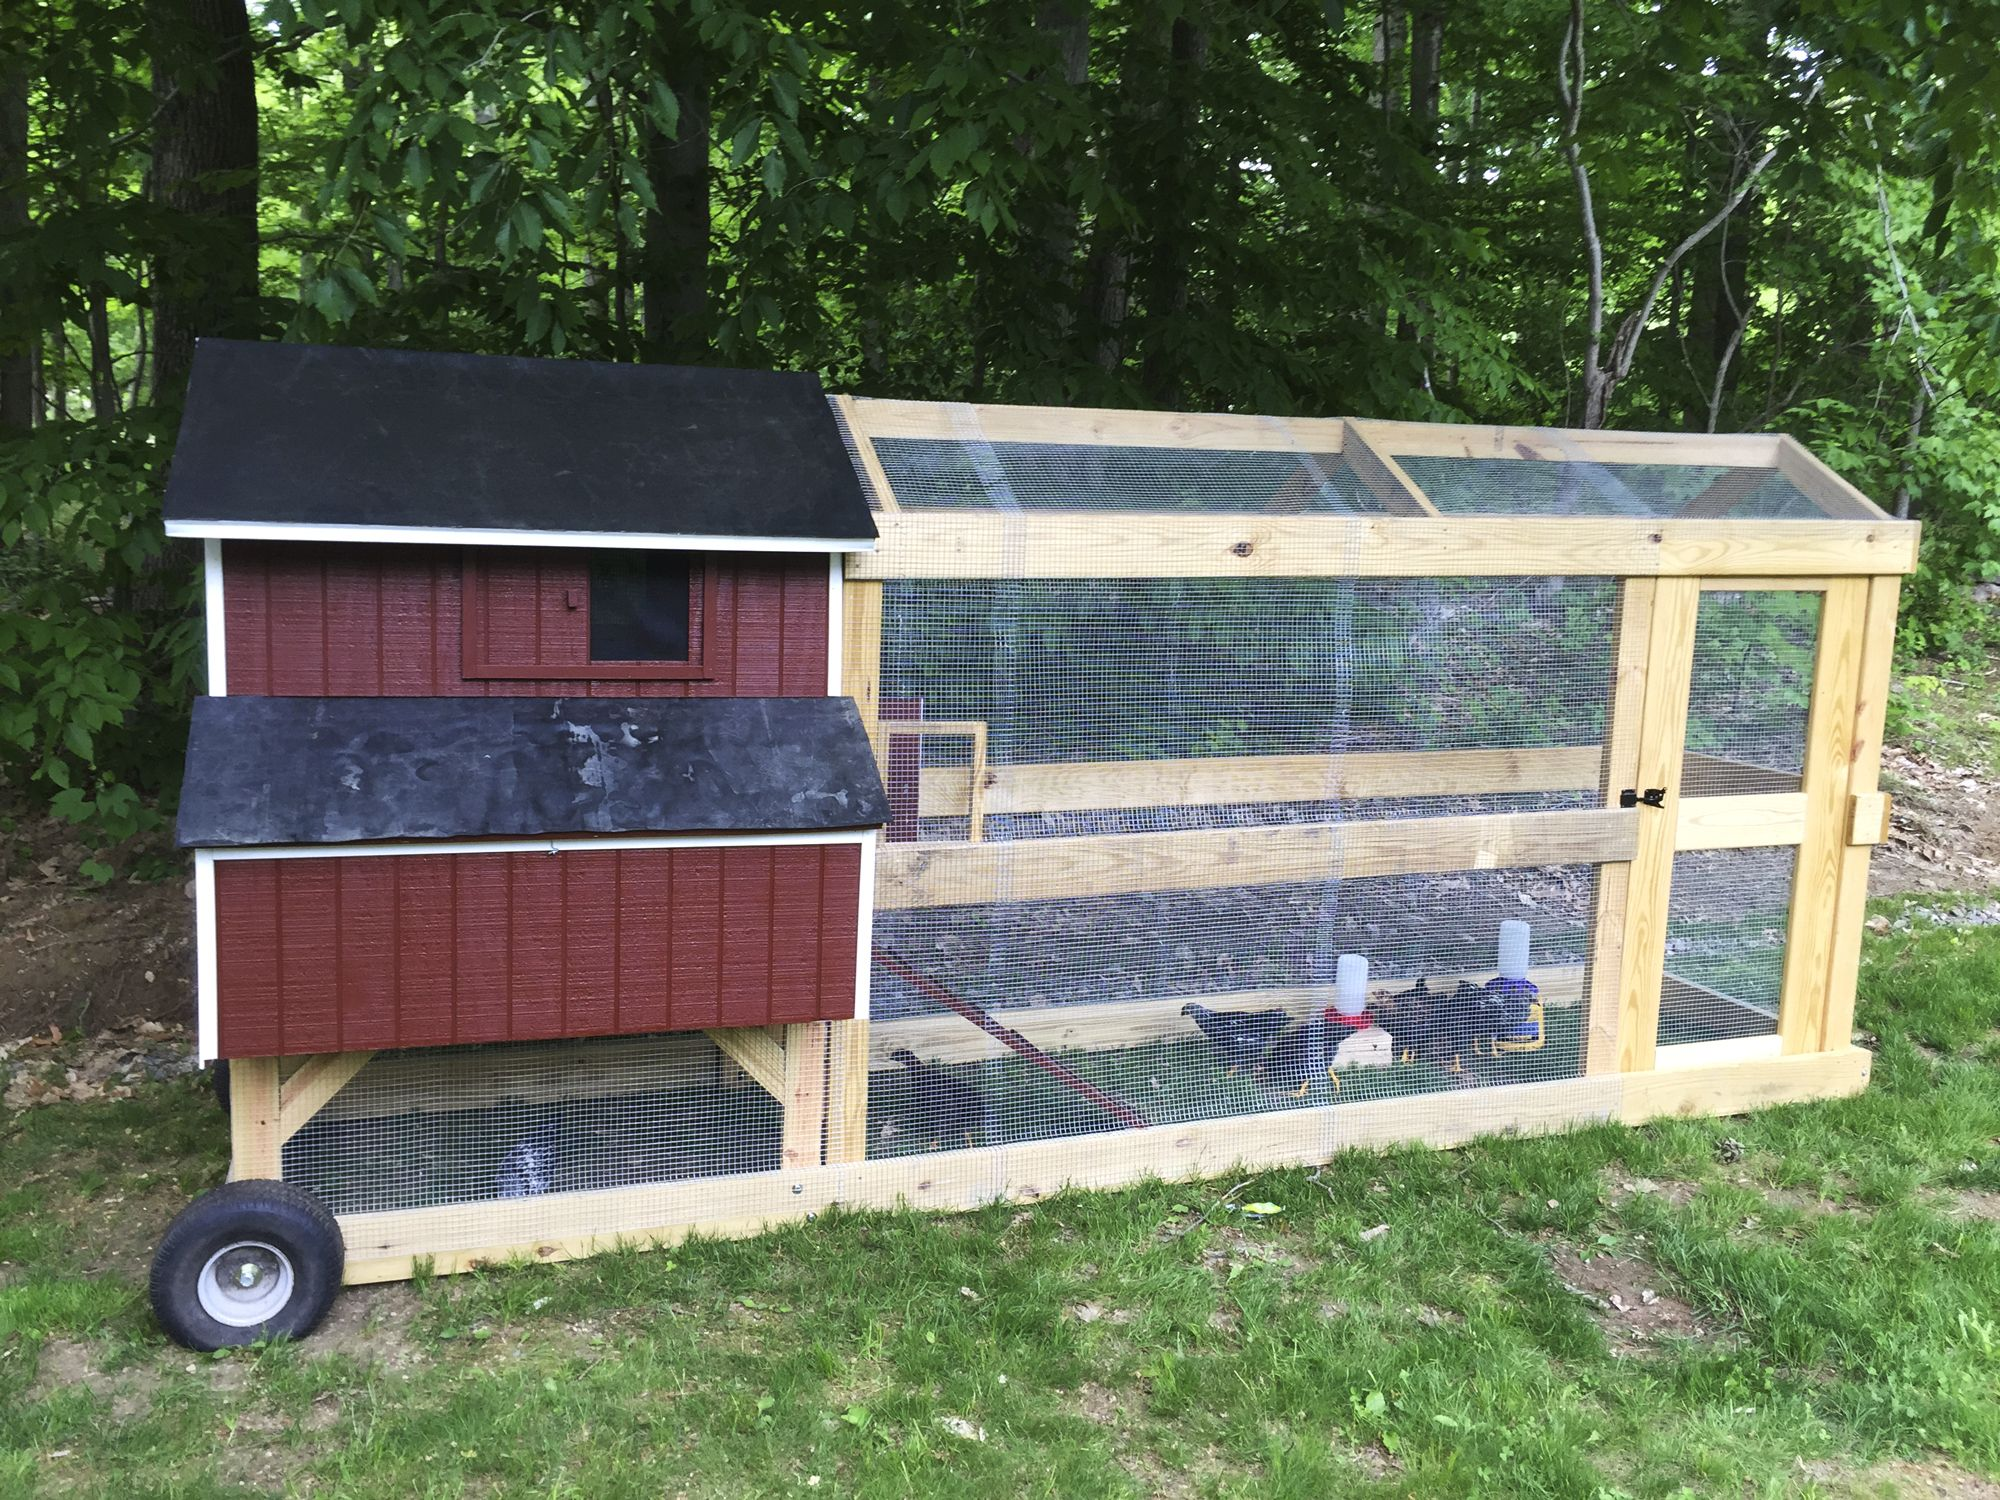 This Guy Built A Brilliant Chicken Coop On Wheels